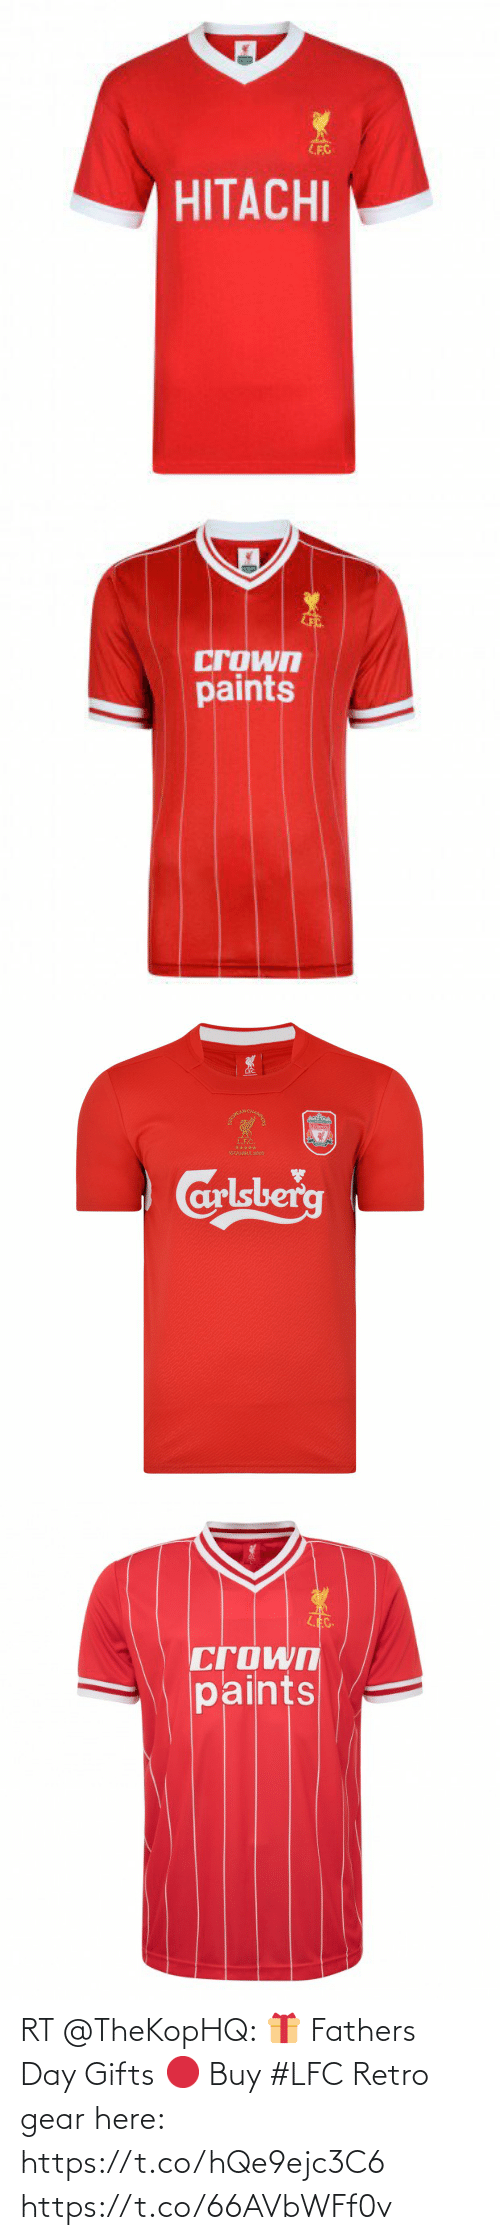 fathers day: RT @TheKopHQ: 🎁 Fathers Day Gifts 🔴  Buy #LFC Retro gear here: https://t.co/hQe9ejc3C6 https://t.co/66AVbWFf0v